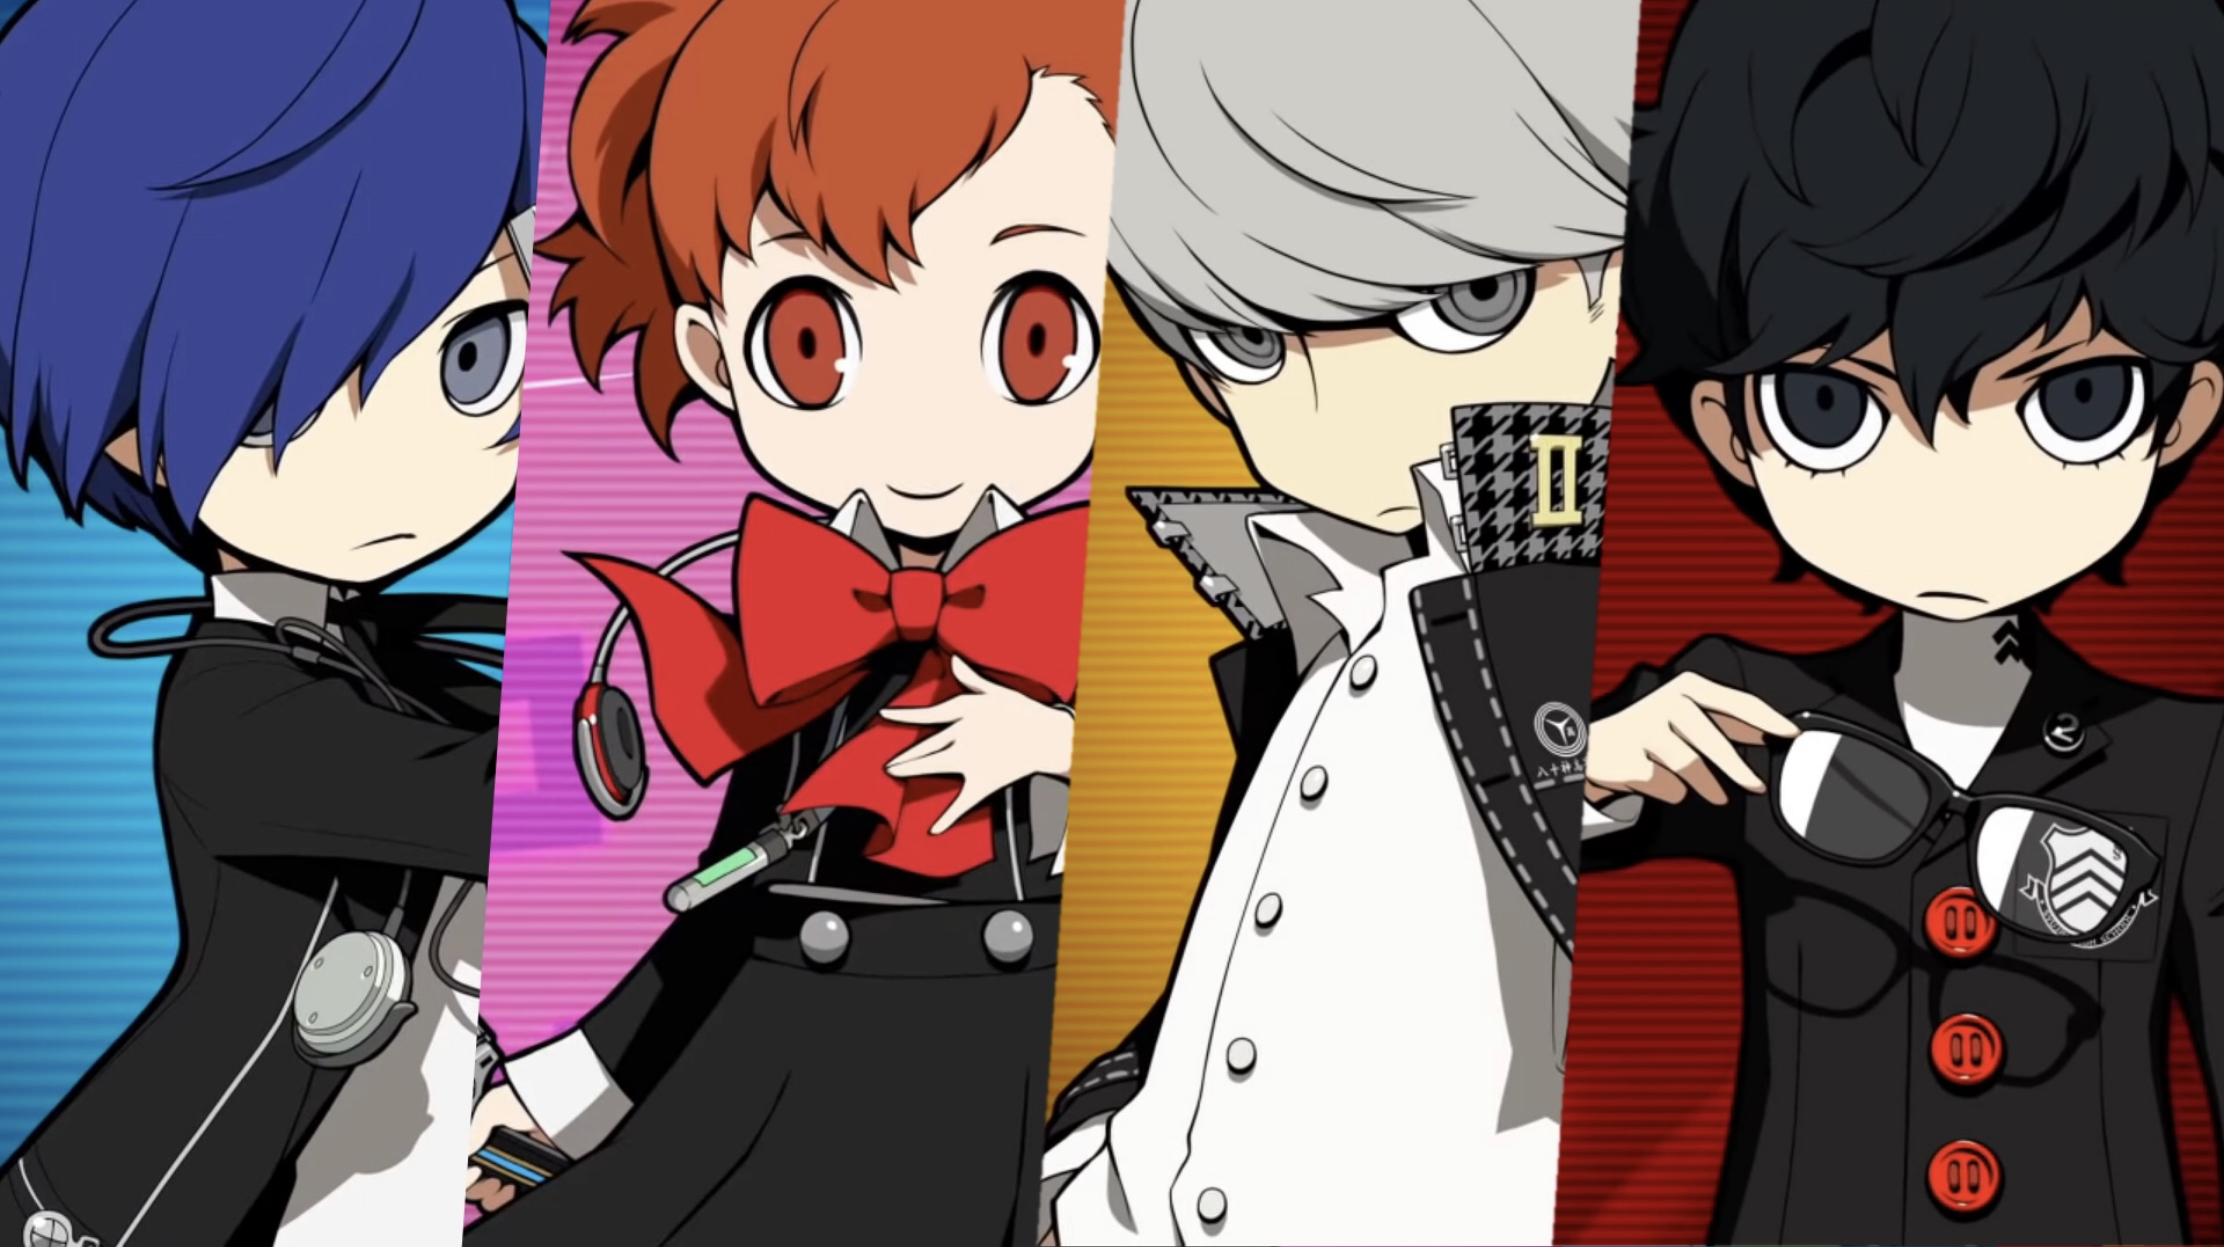 The Phantom Thieves have a new heist to pull in Persona Q2: New